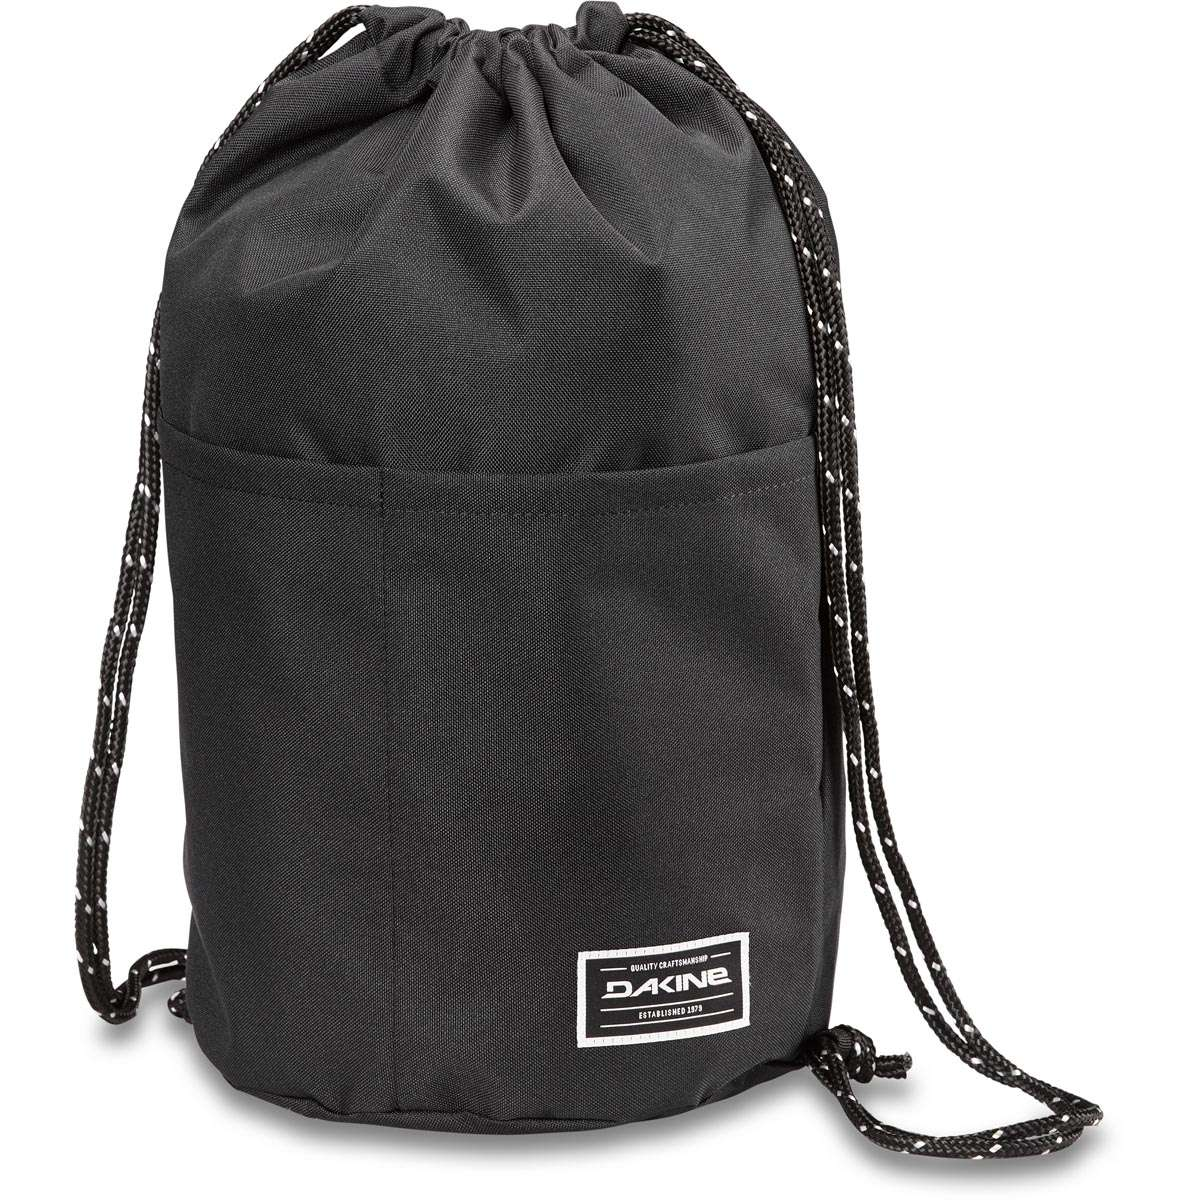 Dakine Cinch Pack 17L Mochila Black  c9adb887c6f